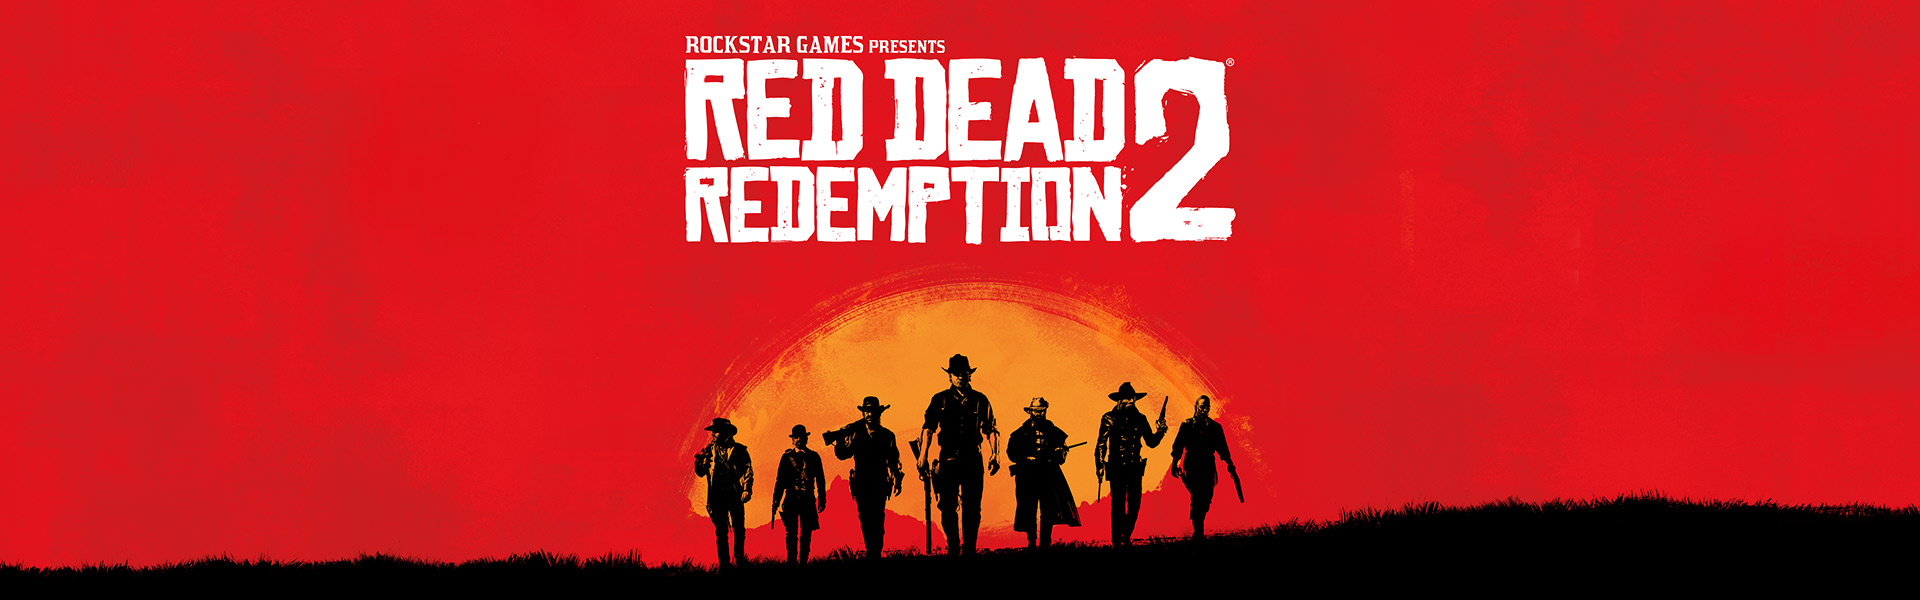 Red Dead Redemption 2 held